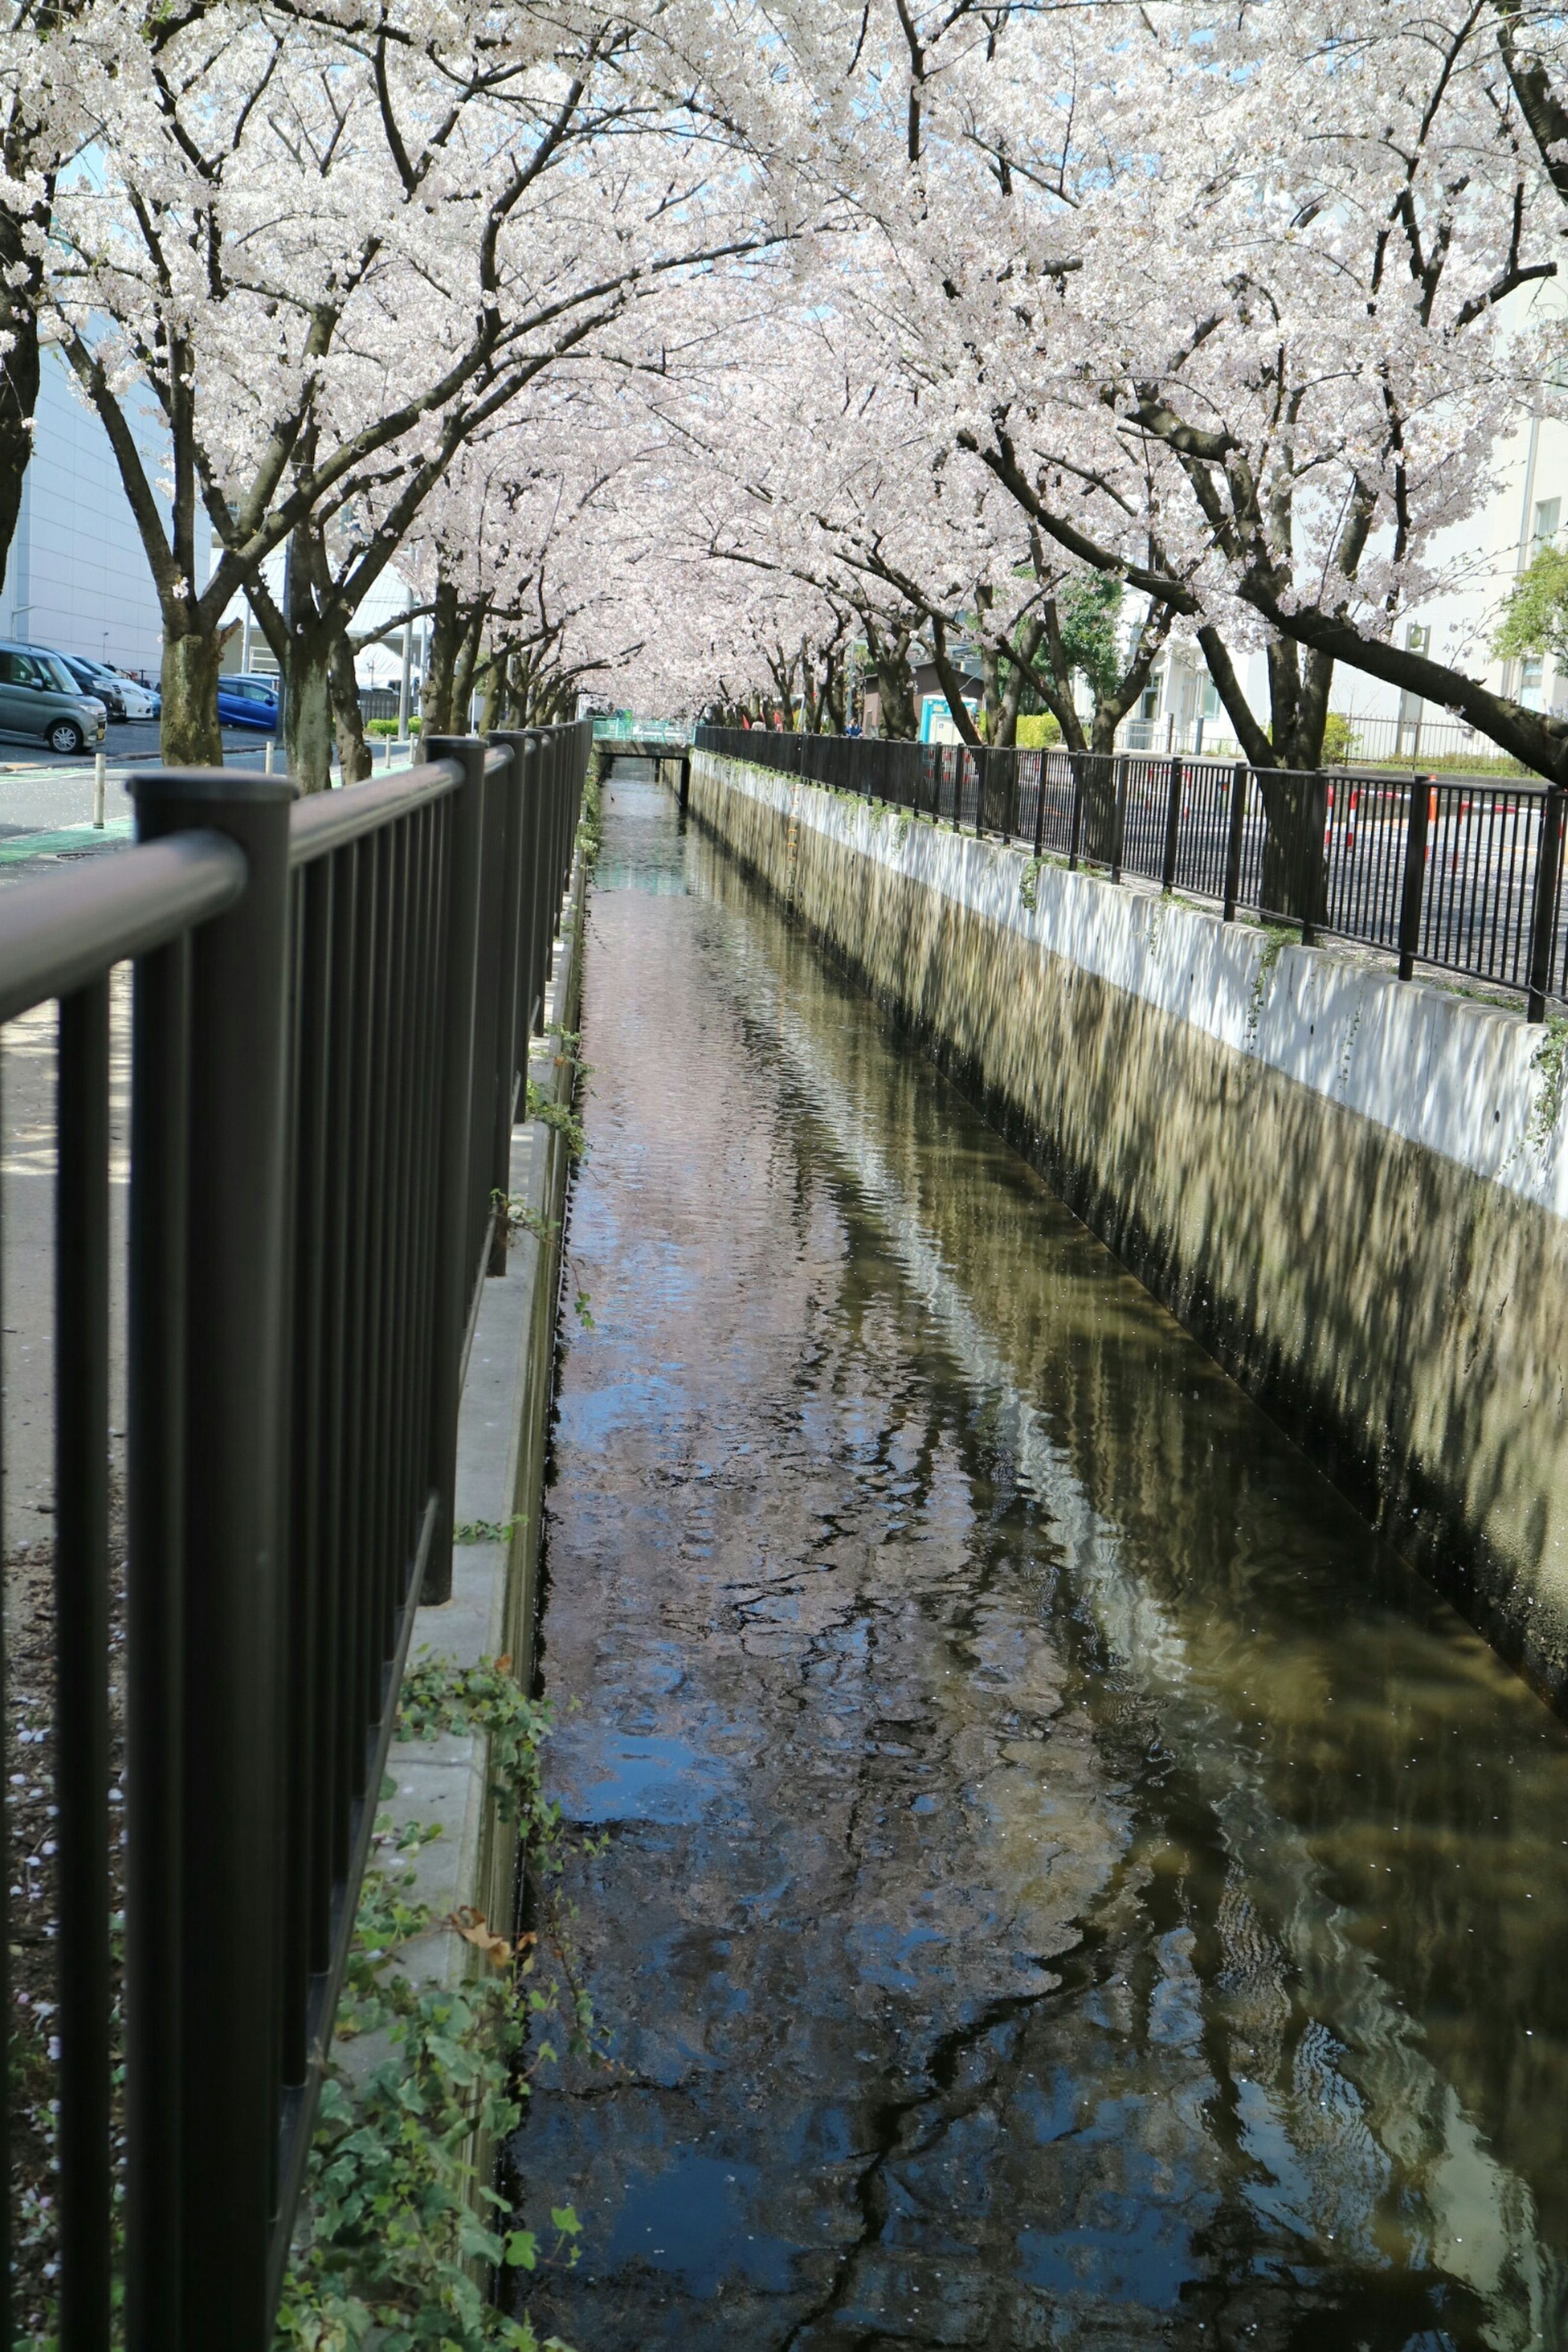 water, tree, railing, bridge - man made structure, built structure, footbridge, connection, reflection, branch, architecture, the way forward, canal, bare tree, nature, river, tranquility, bridge, day, outdoors, lake